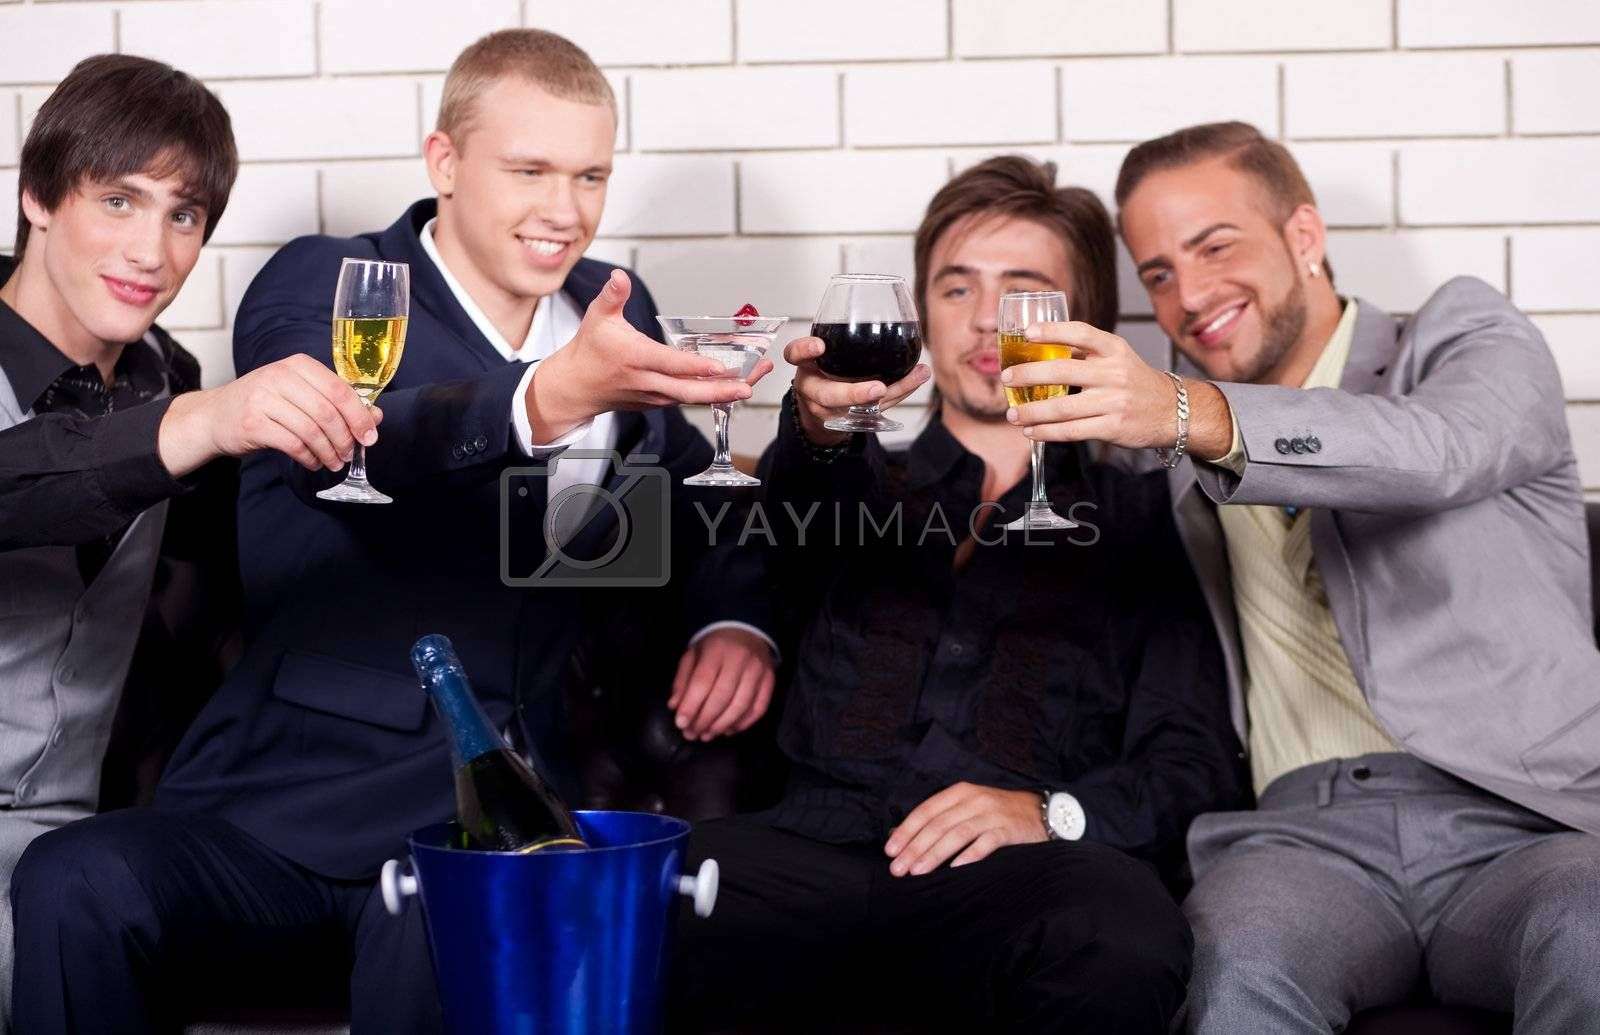 Group of friends have fun and drink at night club